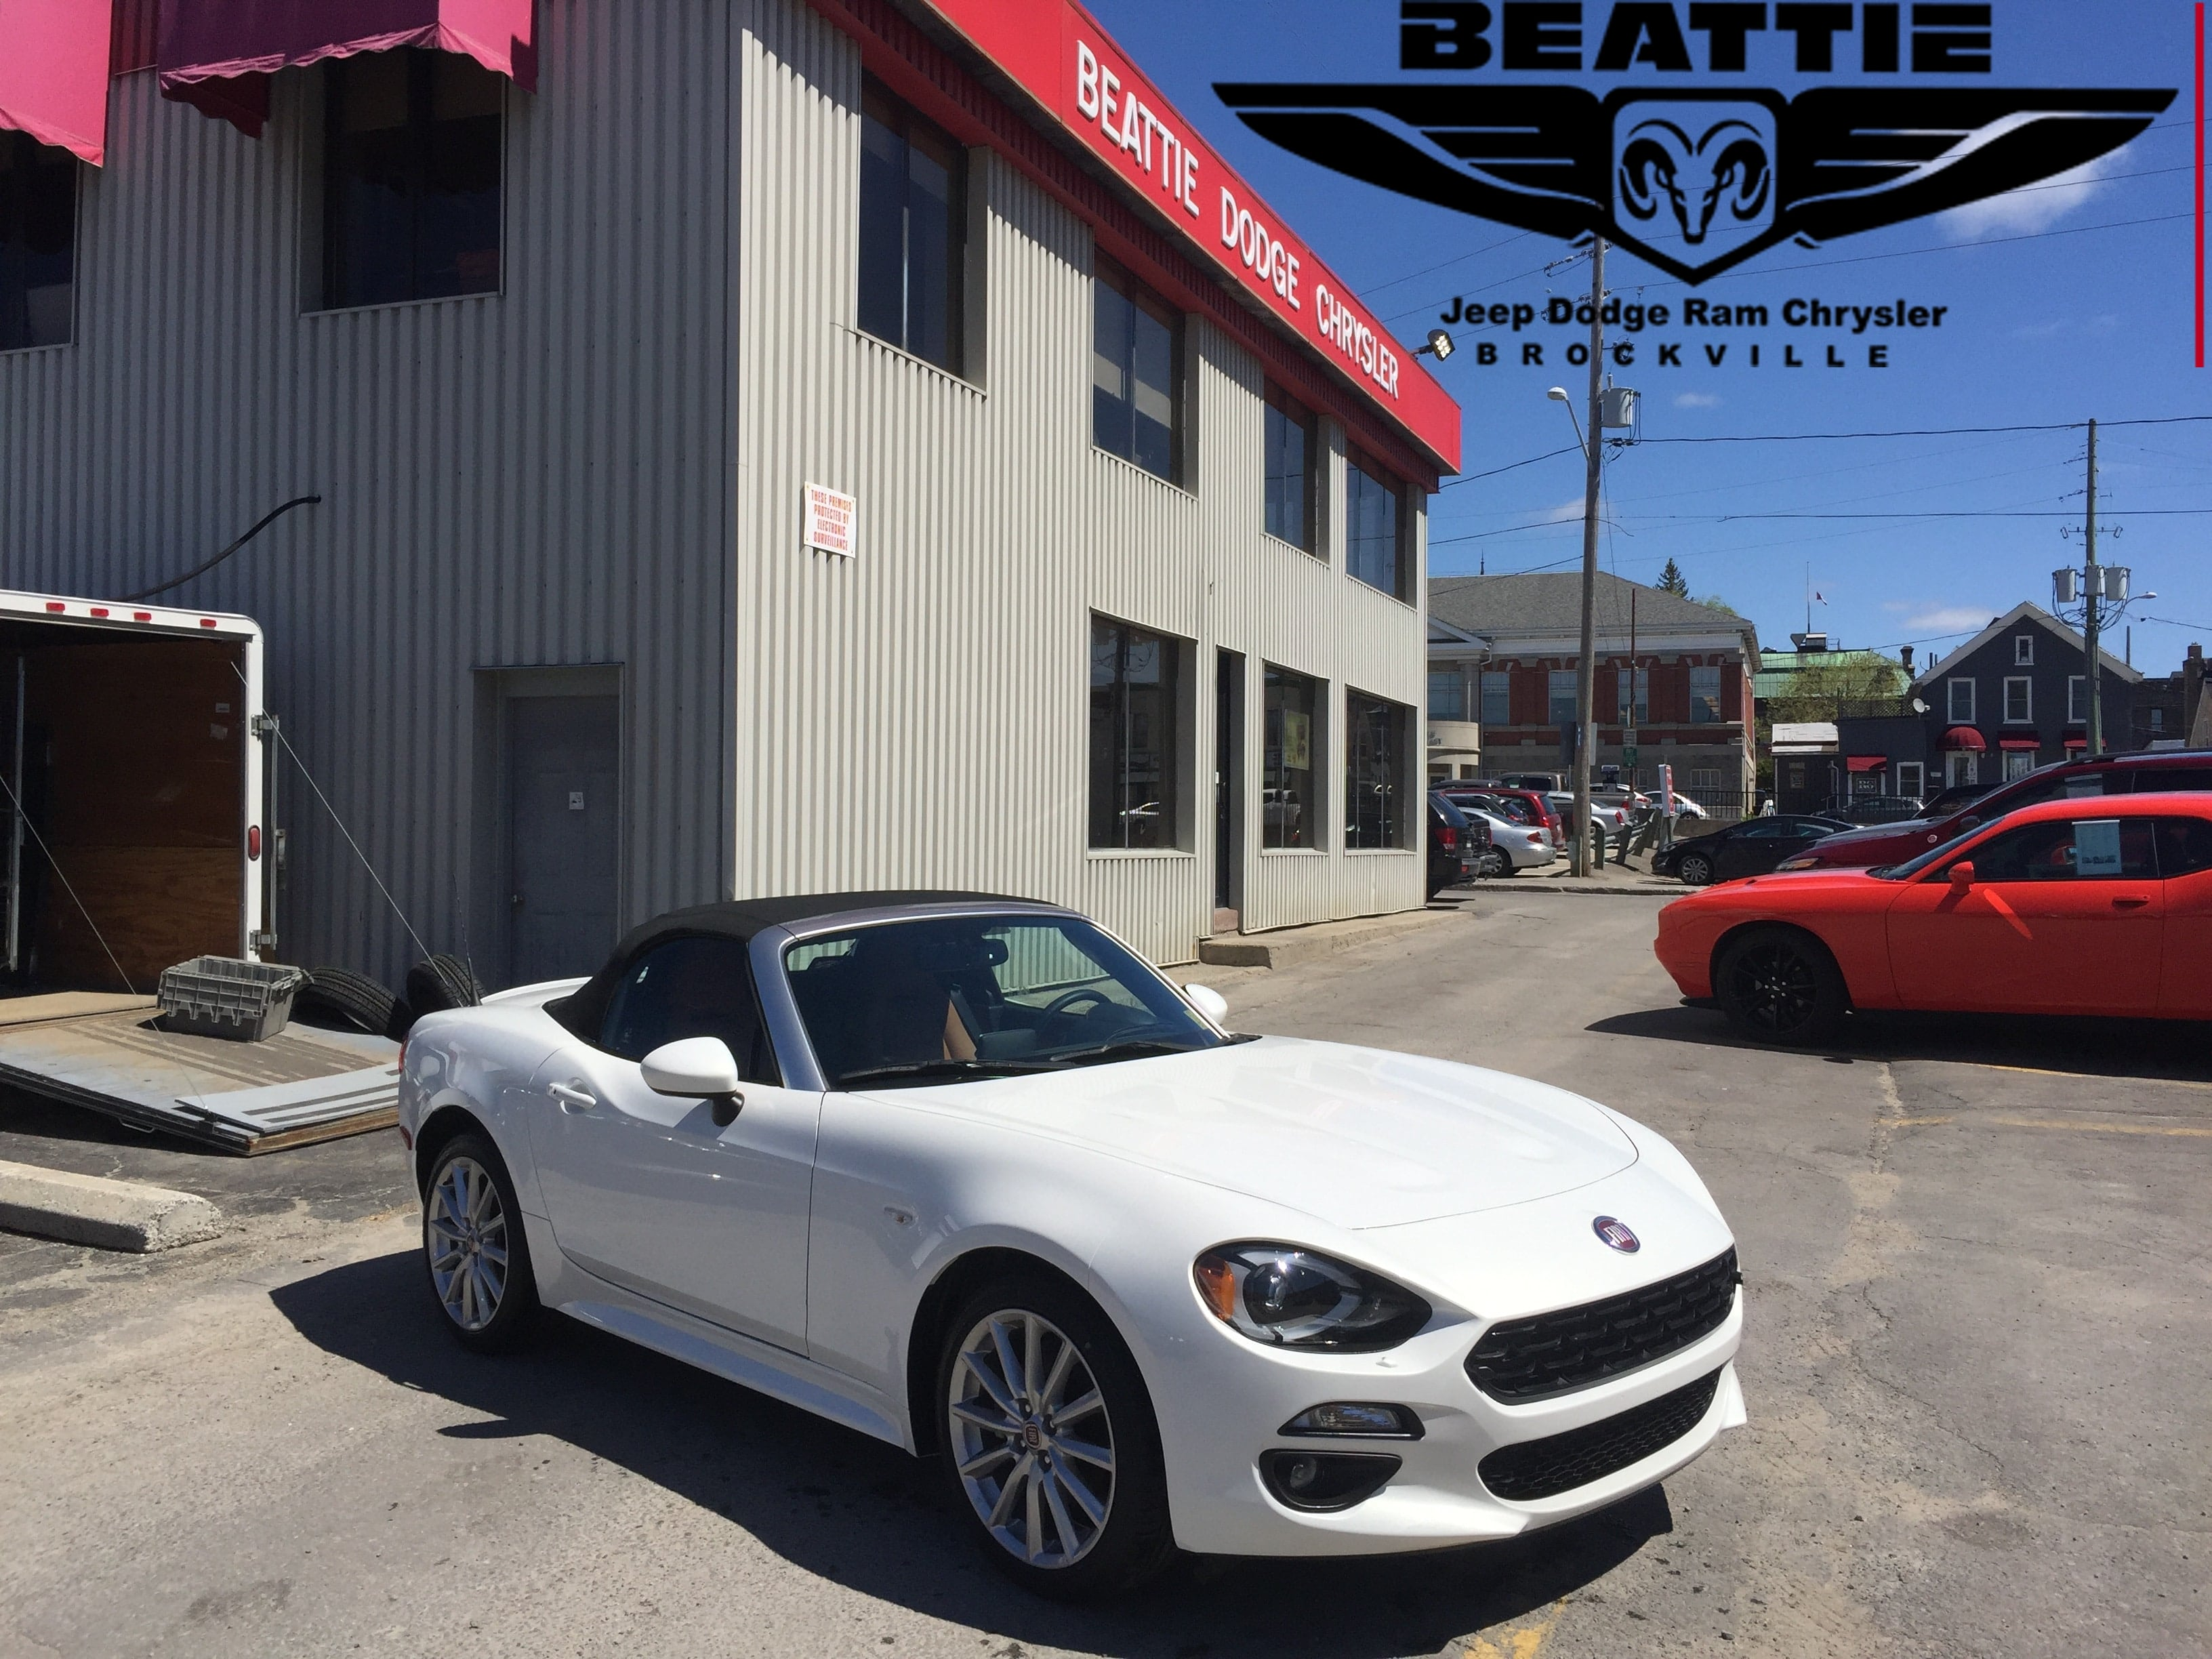 2017 FIAT 124 Spider Classica LEATHER/ BLUETOOTH/ NAV Convertible